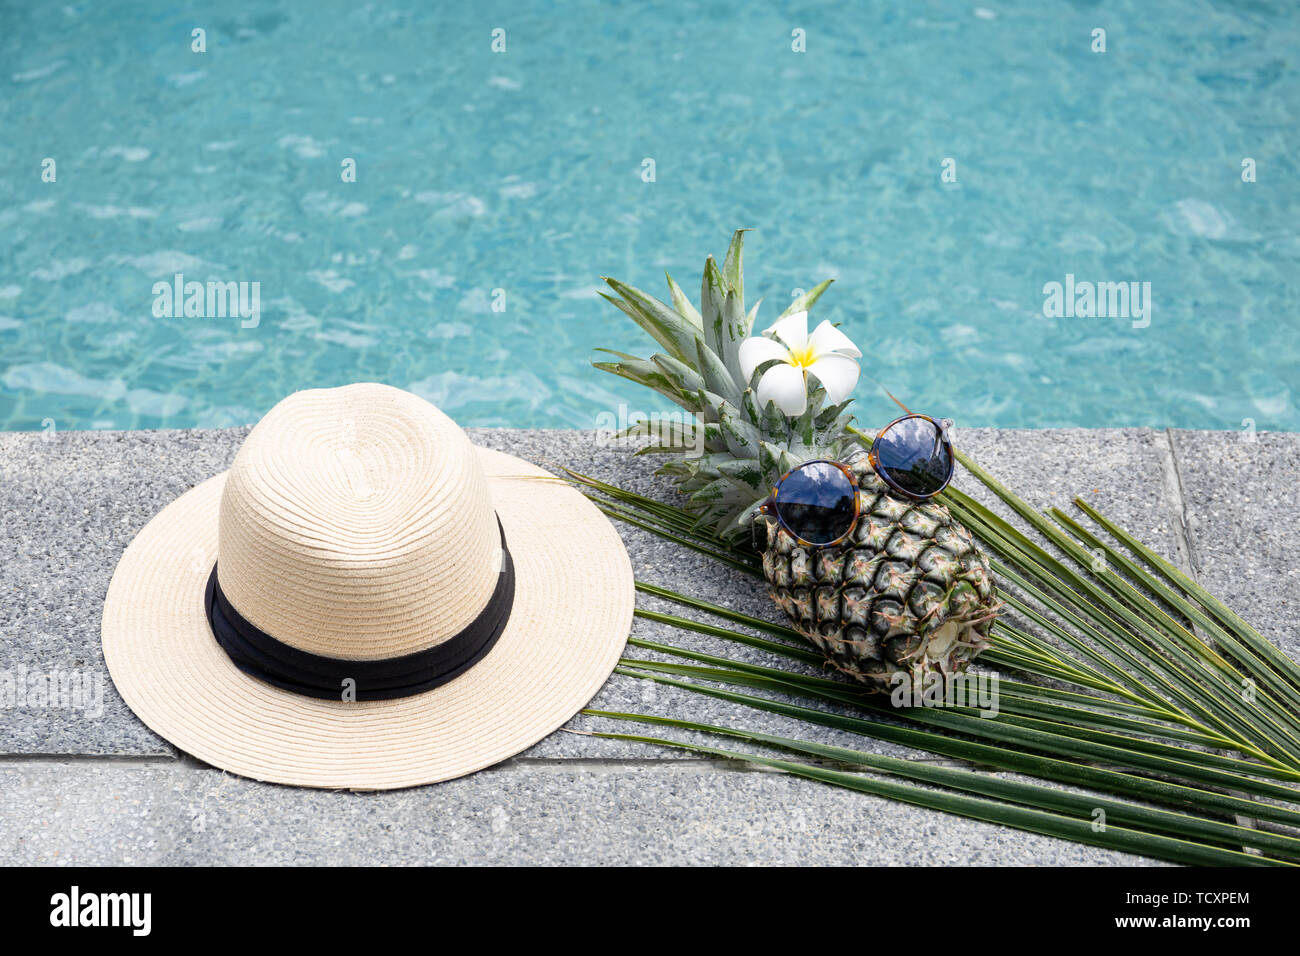 Funny pineapple with sunglasses and flower and hat by swimming pool. Stock Photo